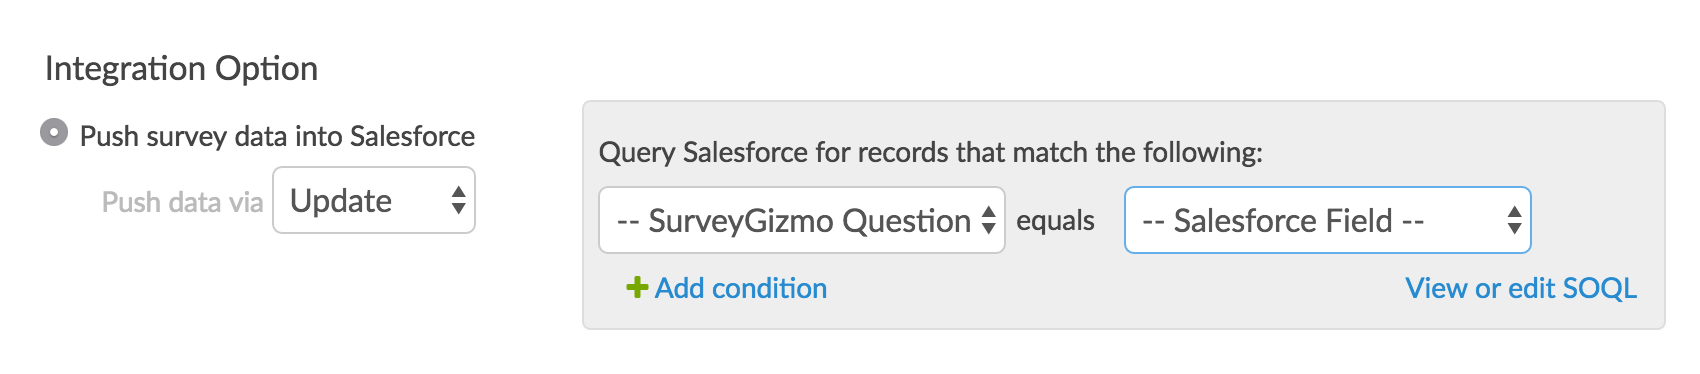 Query Salesforce records that match the following